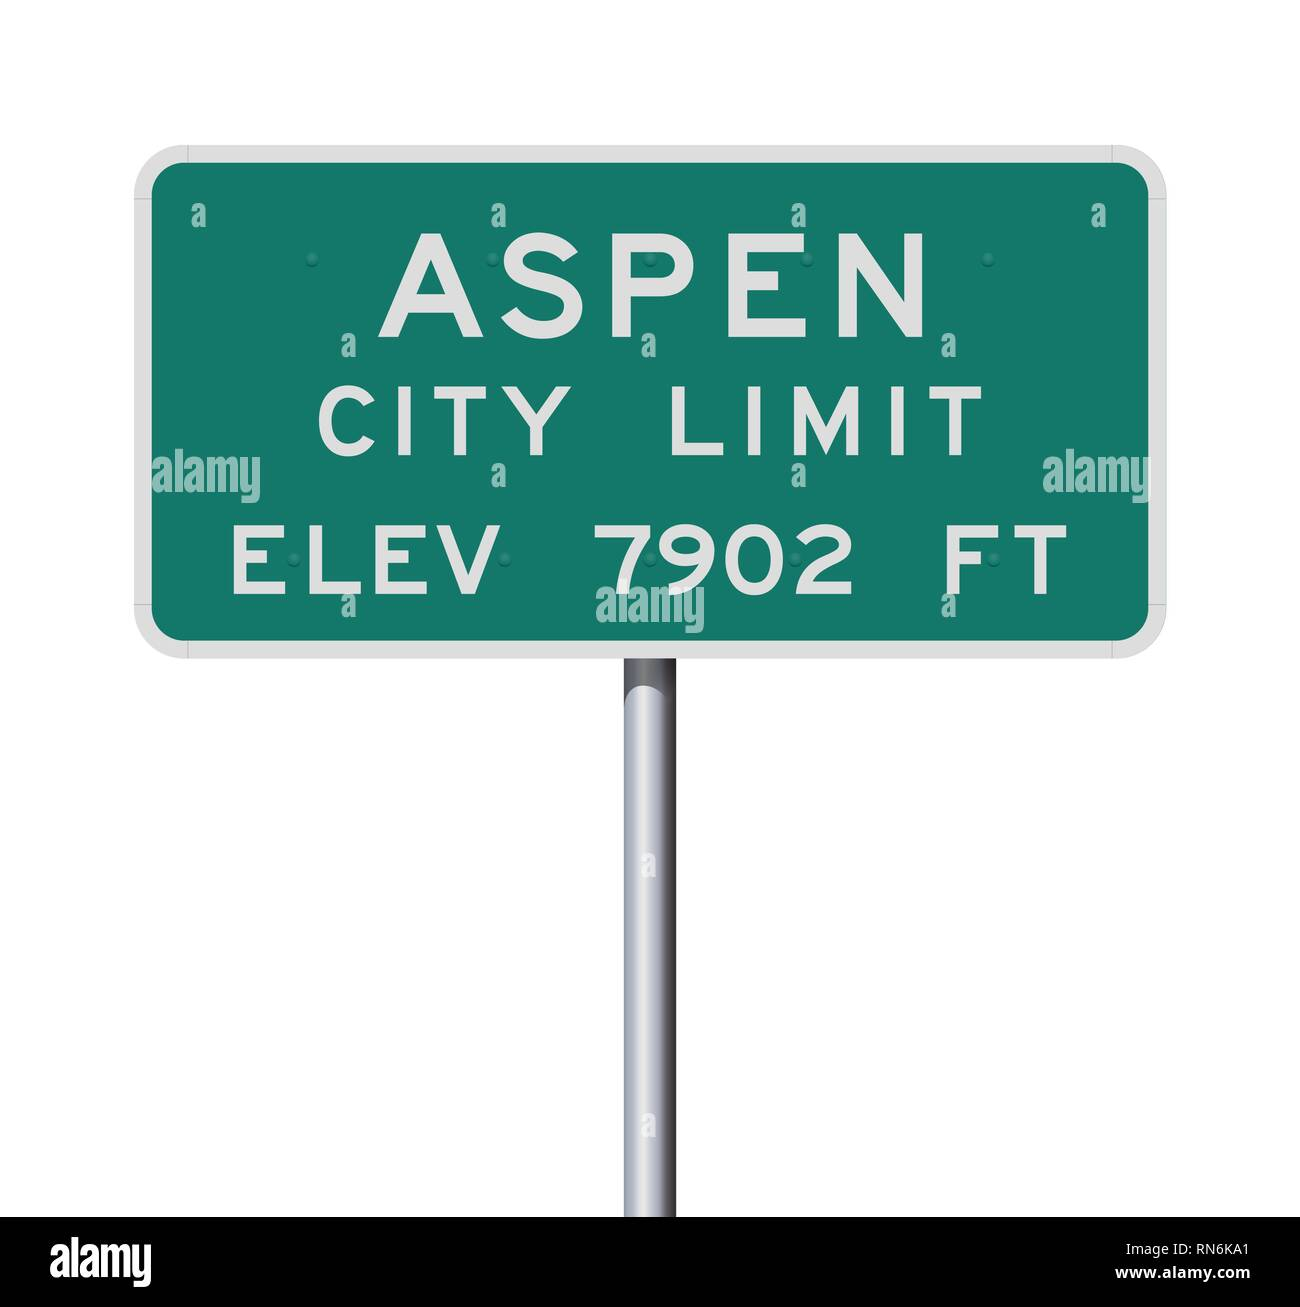 Vector illustration of the Aspen City Limits green road sign - Stock Image